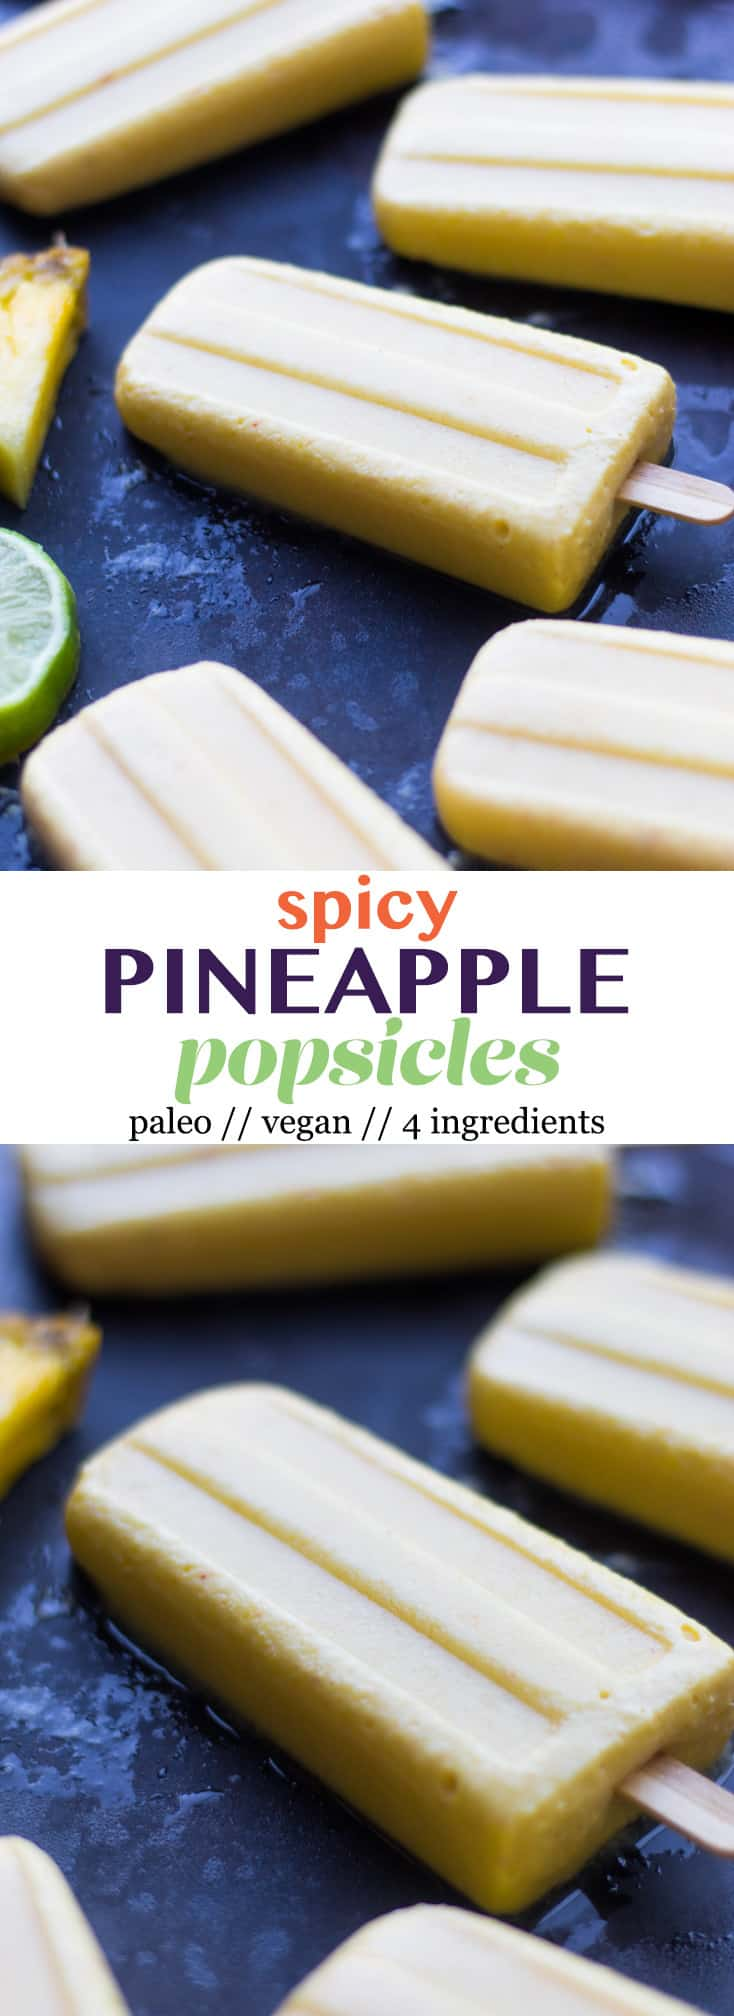 4 ingredient Pineapple Popsicles make an easy and healthy summertime treat. They are vegan, paleo, and sweetener free! - Eat the Gains